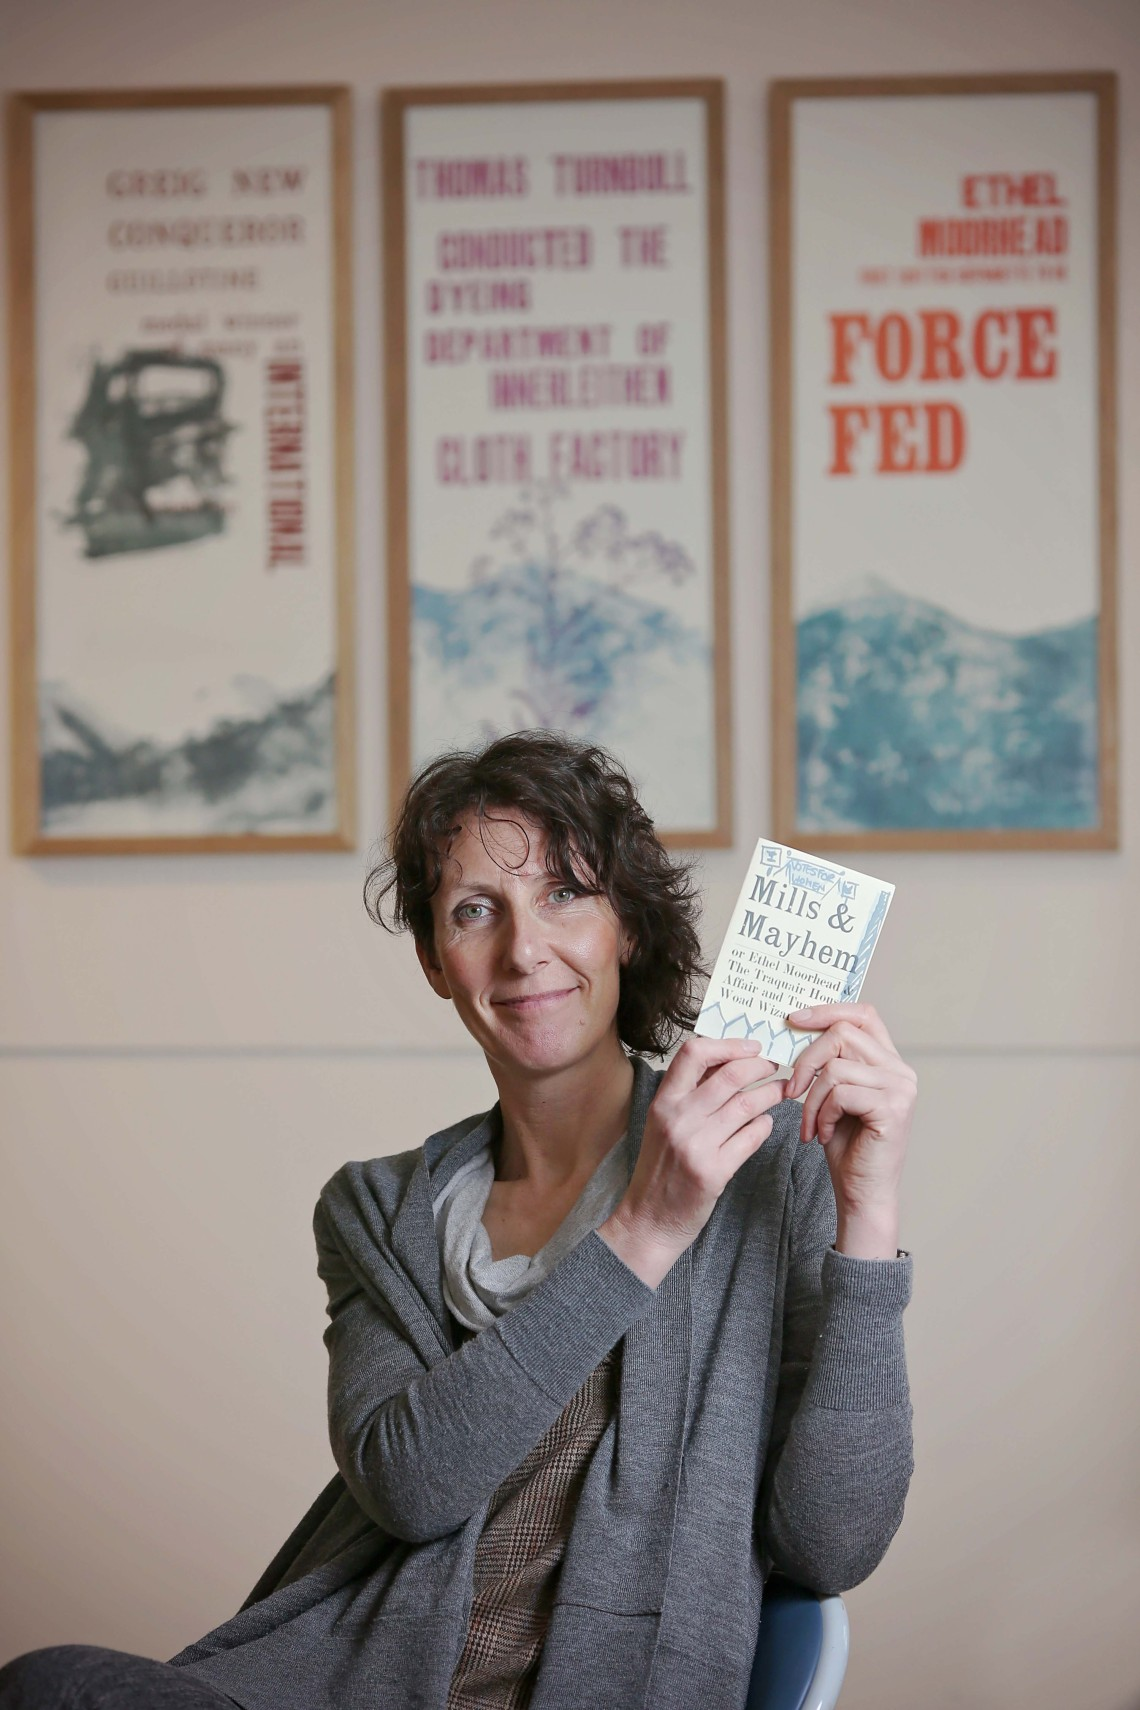 Robert Smail's Printing Works, the National Trust for Scotland is celebrating its 150th anniversary this year. Future/Past is an exhibition to celebrate. Theresa Easton, an artist from Newcastle is exhibiting some of her work. She has created chap books and broadsides, which were all designed at the print works. Photographed holding a chap book